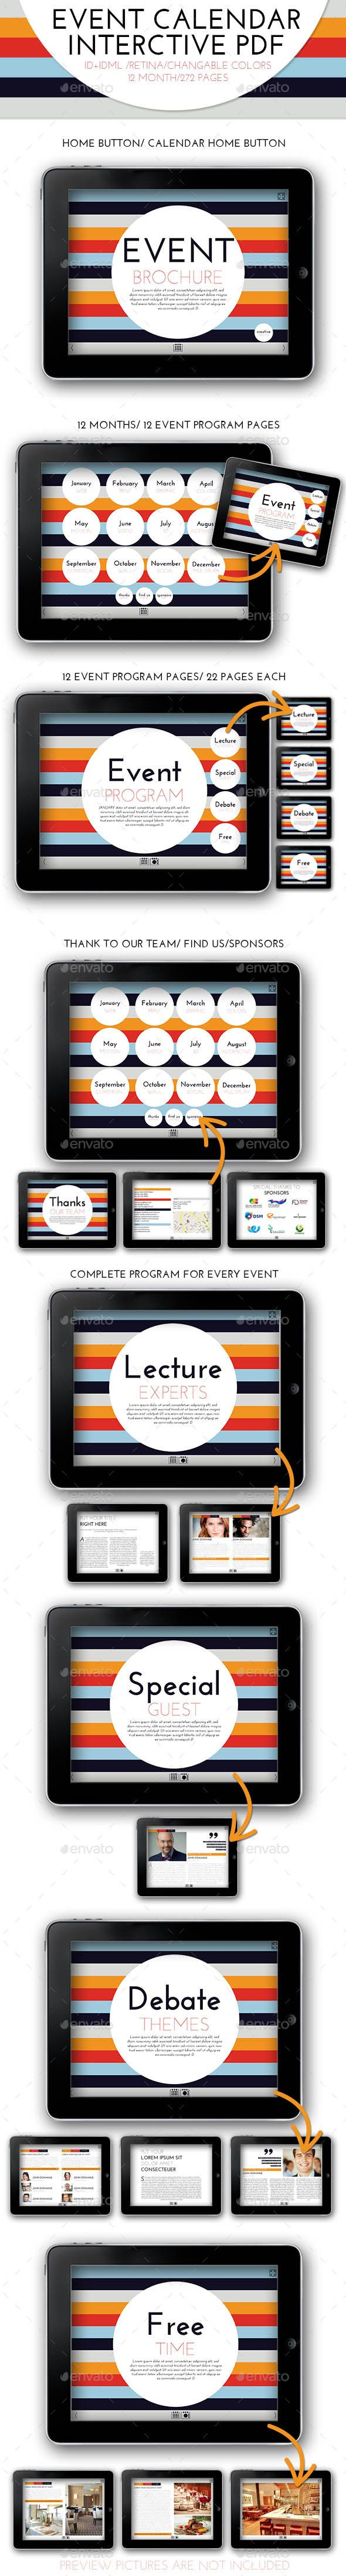 Interctive PDF Event Calendar Template #design Download: http://graphicriver.net/item/interctive-pdf-event-calendar/10336221?ref=ksioks